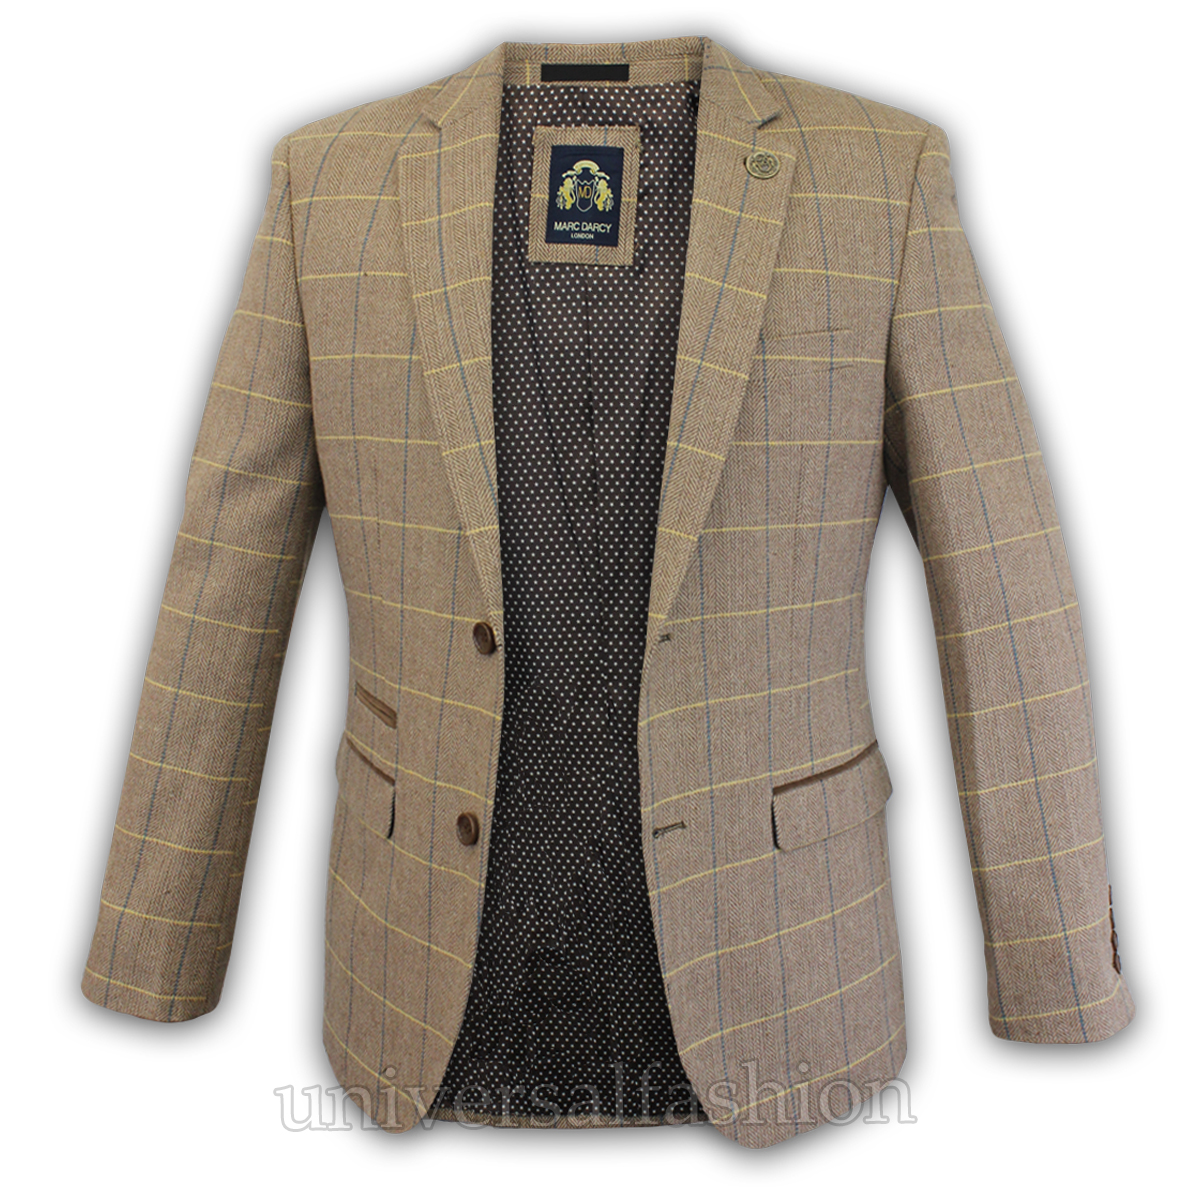 Mens-Blazer-Marc-Darcy-Wool-Look-Coat-Formal-Dinner-Check-Jacket-Patch-Lined-New thumbnail 7